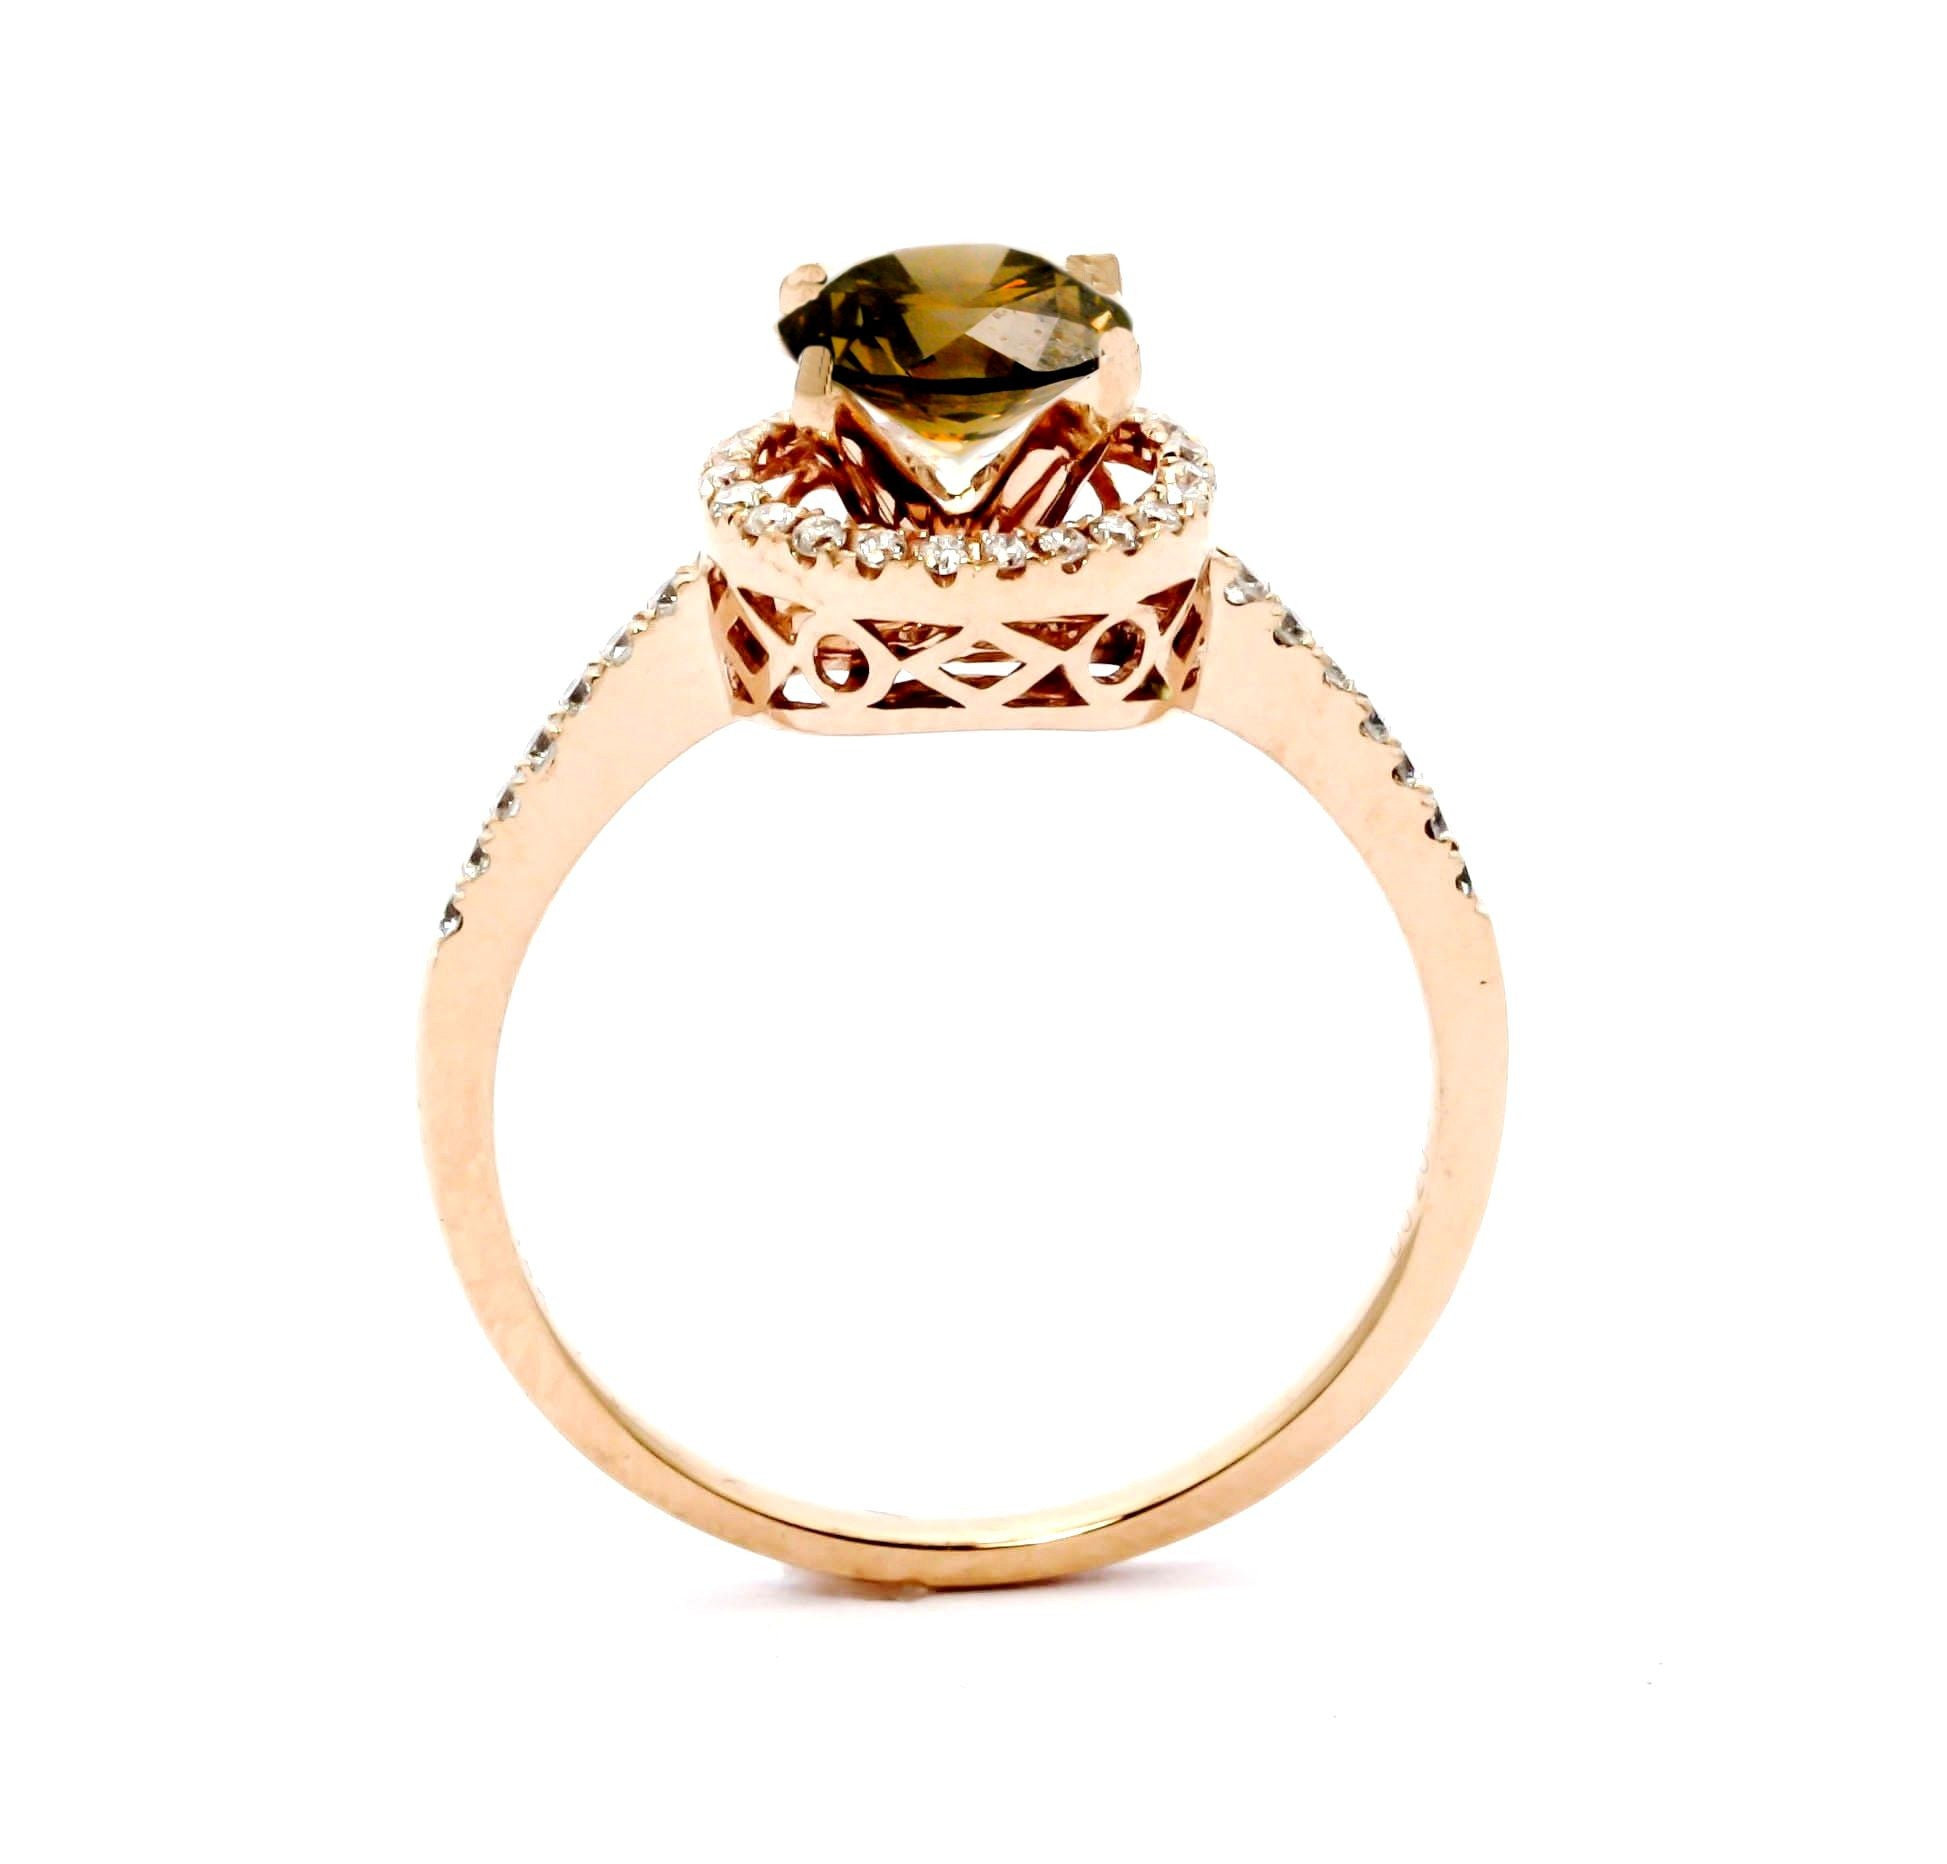 1 Carat Fancy Brown Smoky Quartz Halo Ring, With White Diamond Accent Stones, Rose Gold, Engagement Ring Anniversary Ring - SQ85037